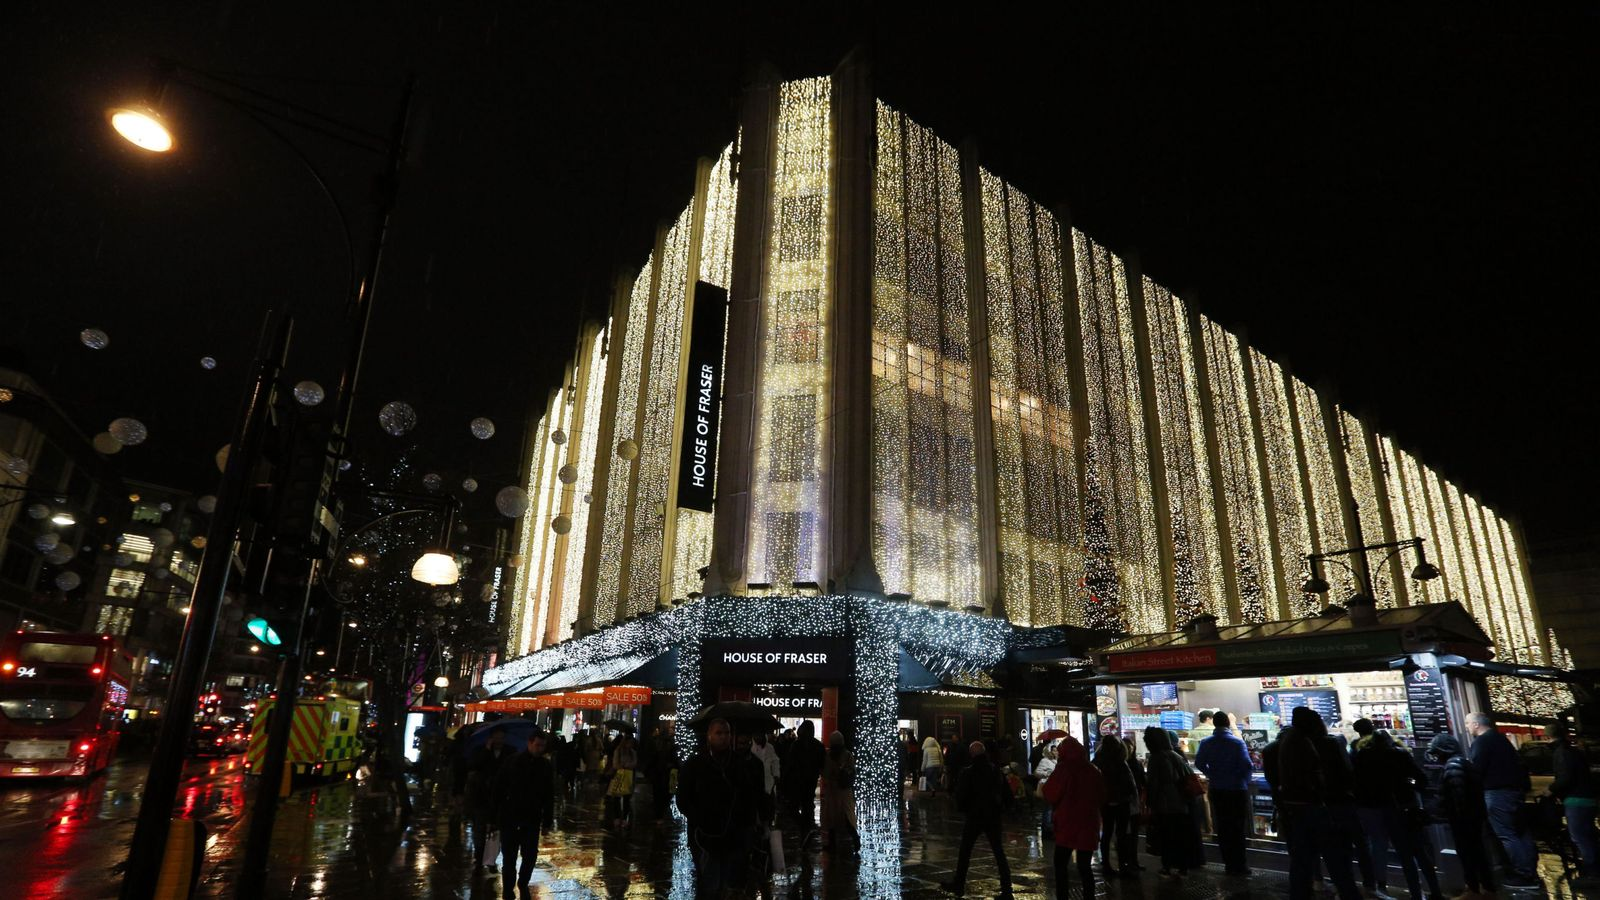 House Of Fraser: The Full List Of Stores That Will Close